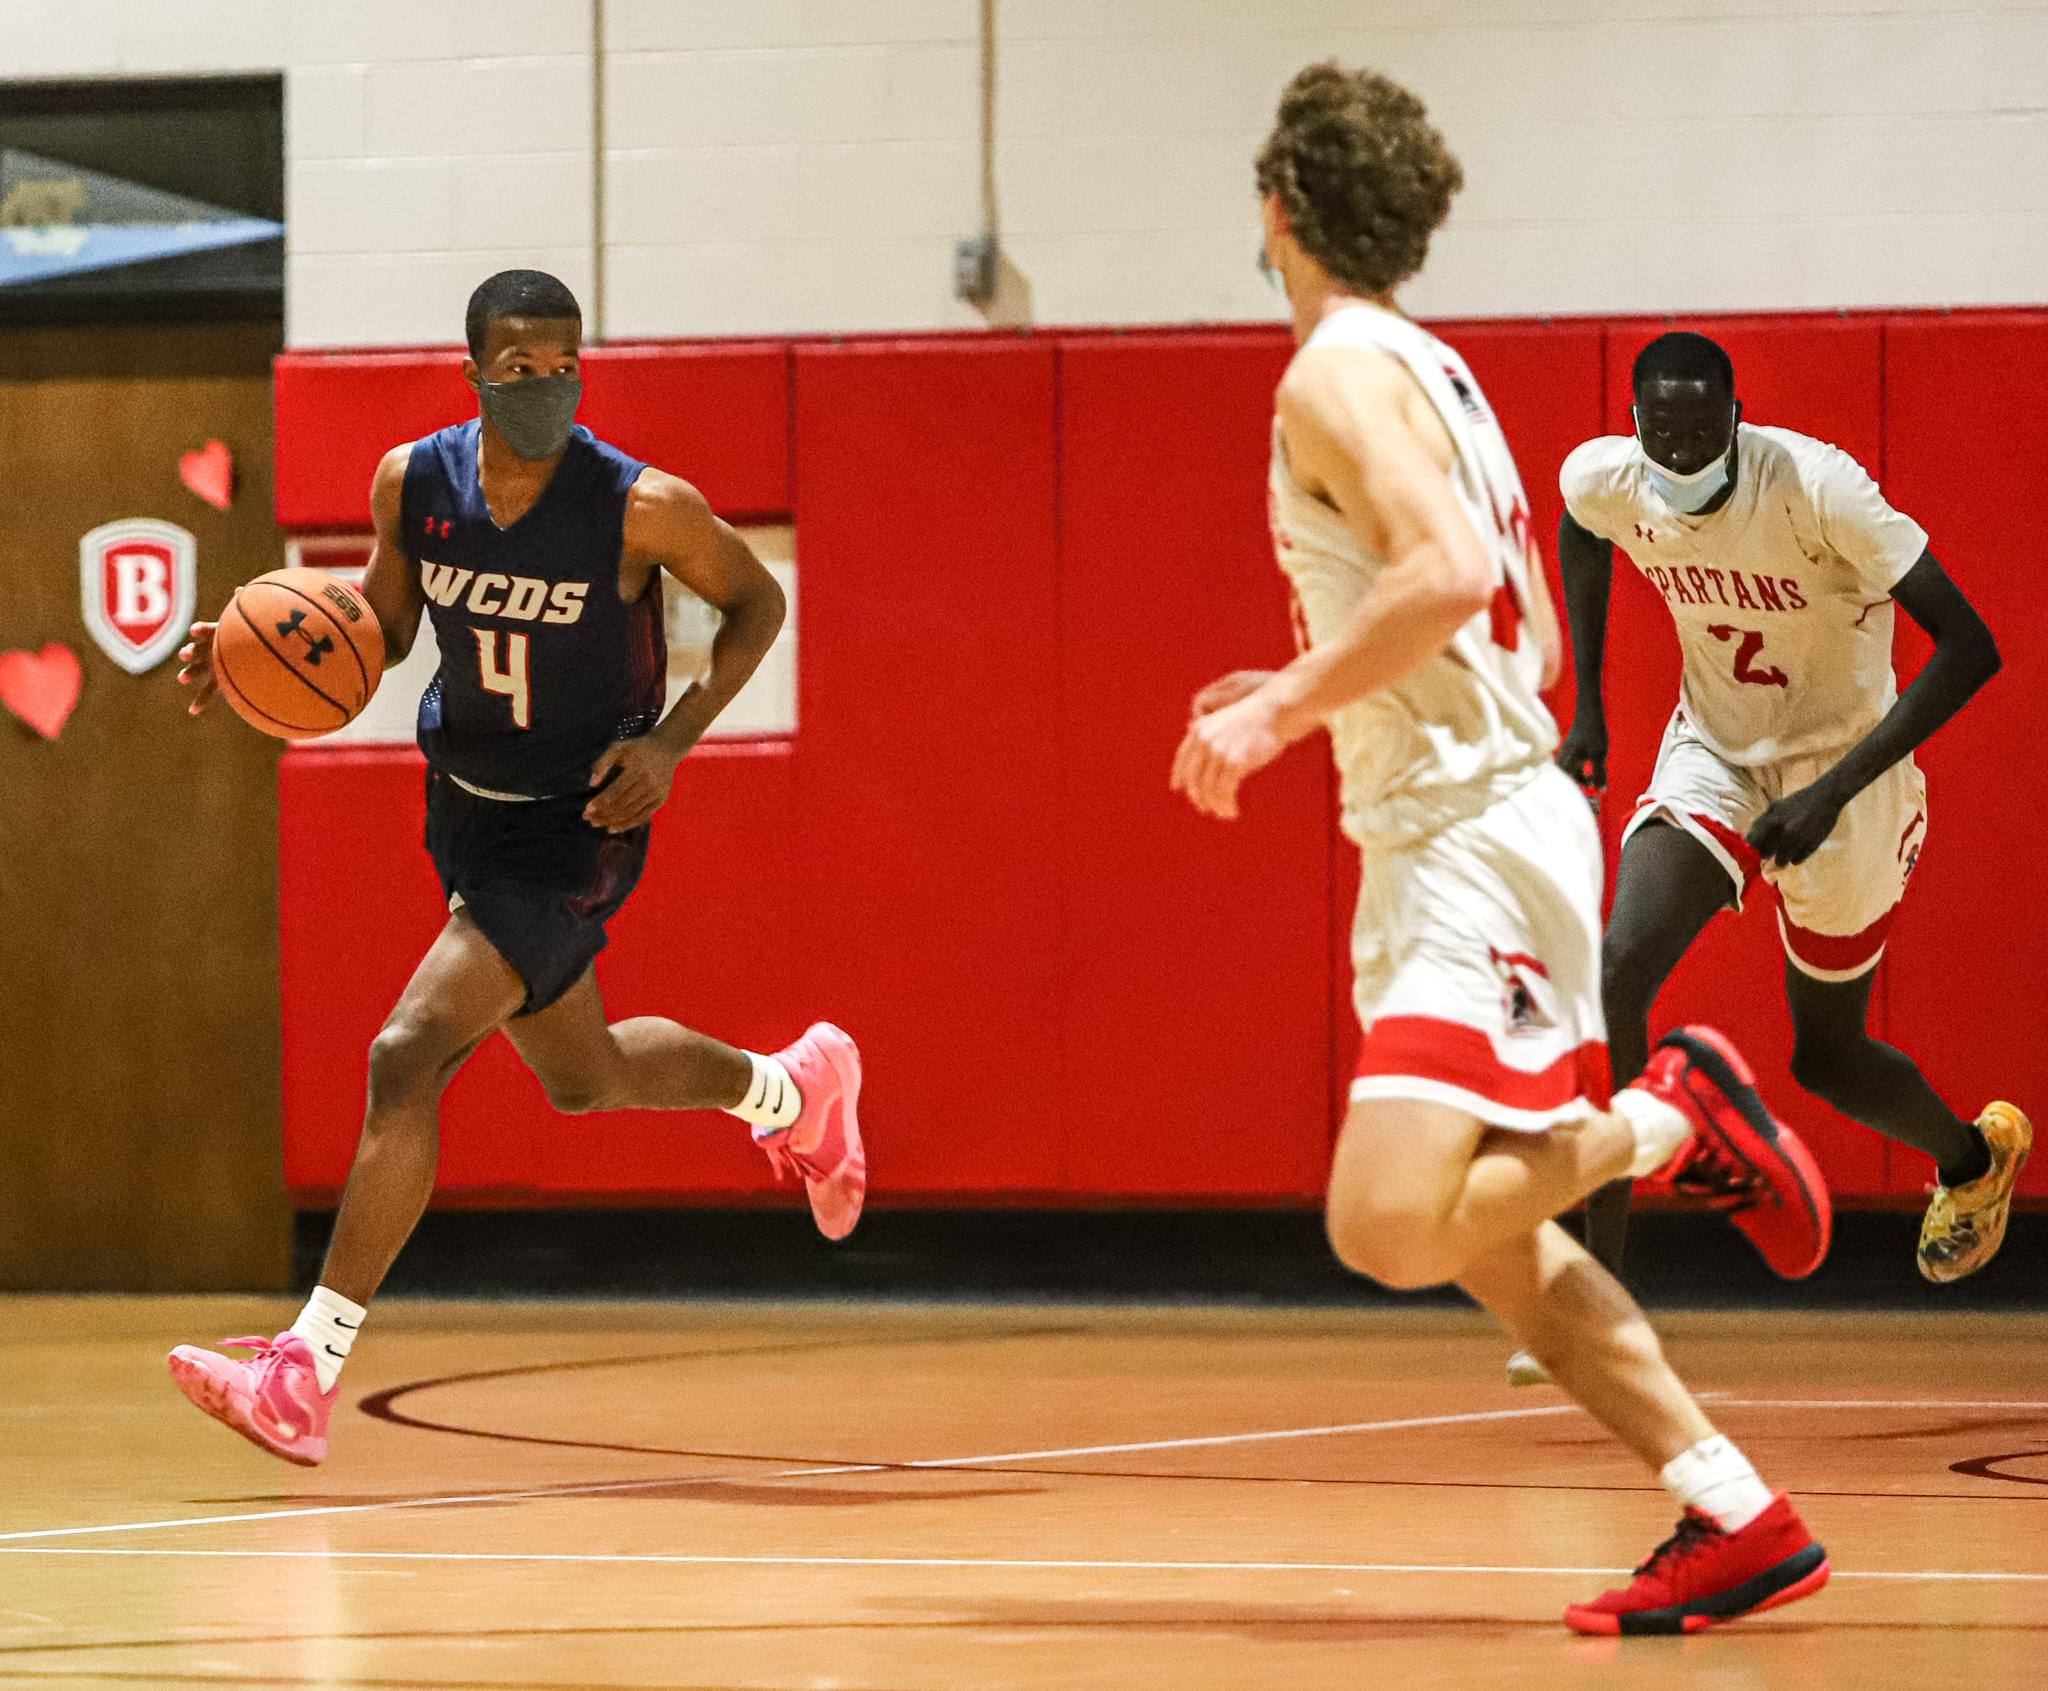 Boys Basketball: The Burlington School Upends WCDS In NCISAA Semifinals (PHOTO GALLERY)